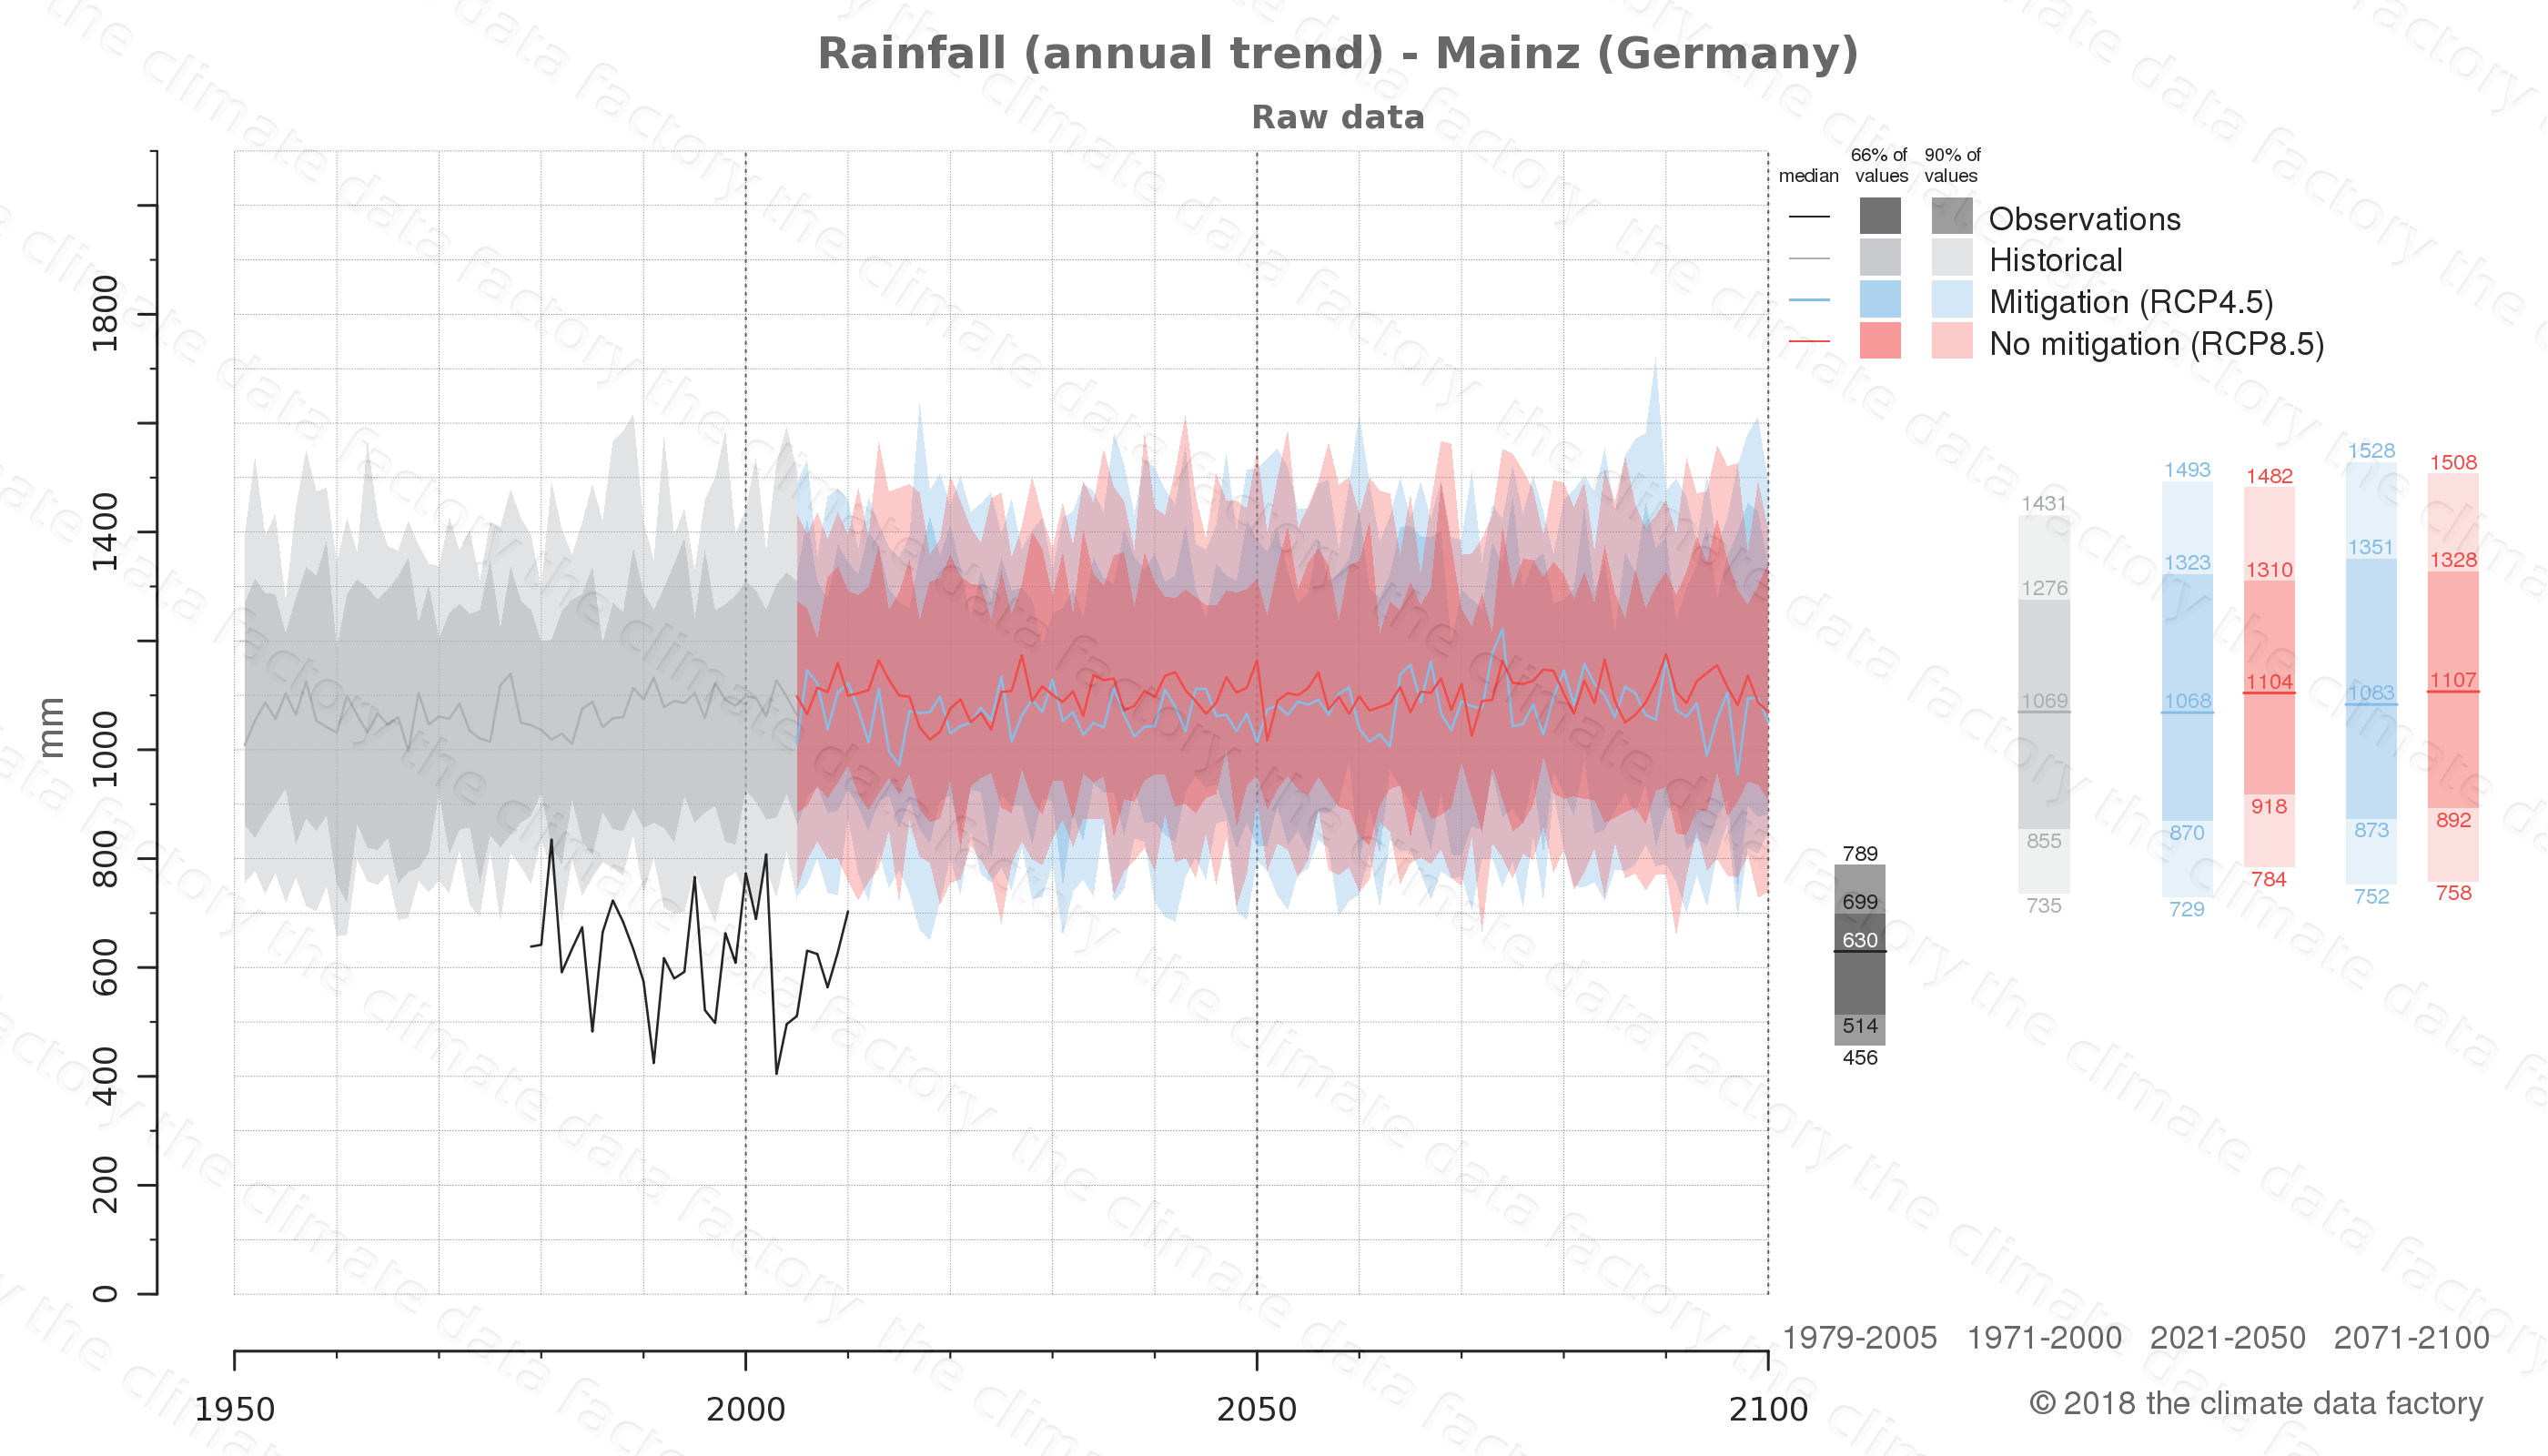 climate change data policy adaptation climate graph city data rainfall mainz germany